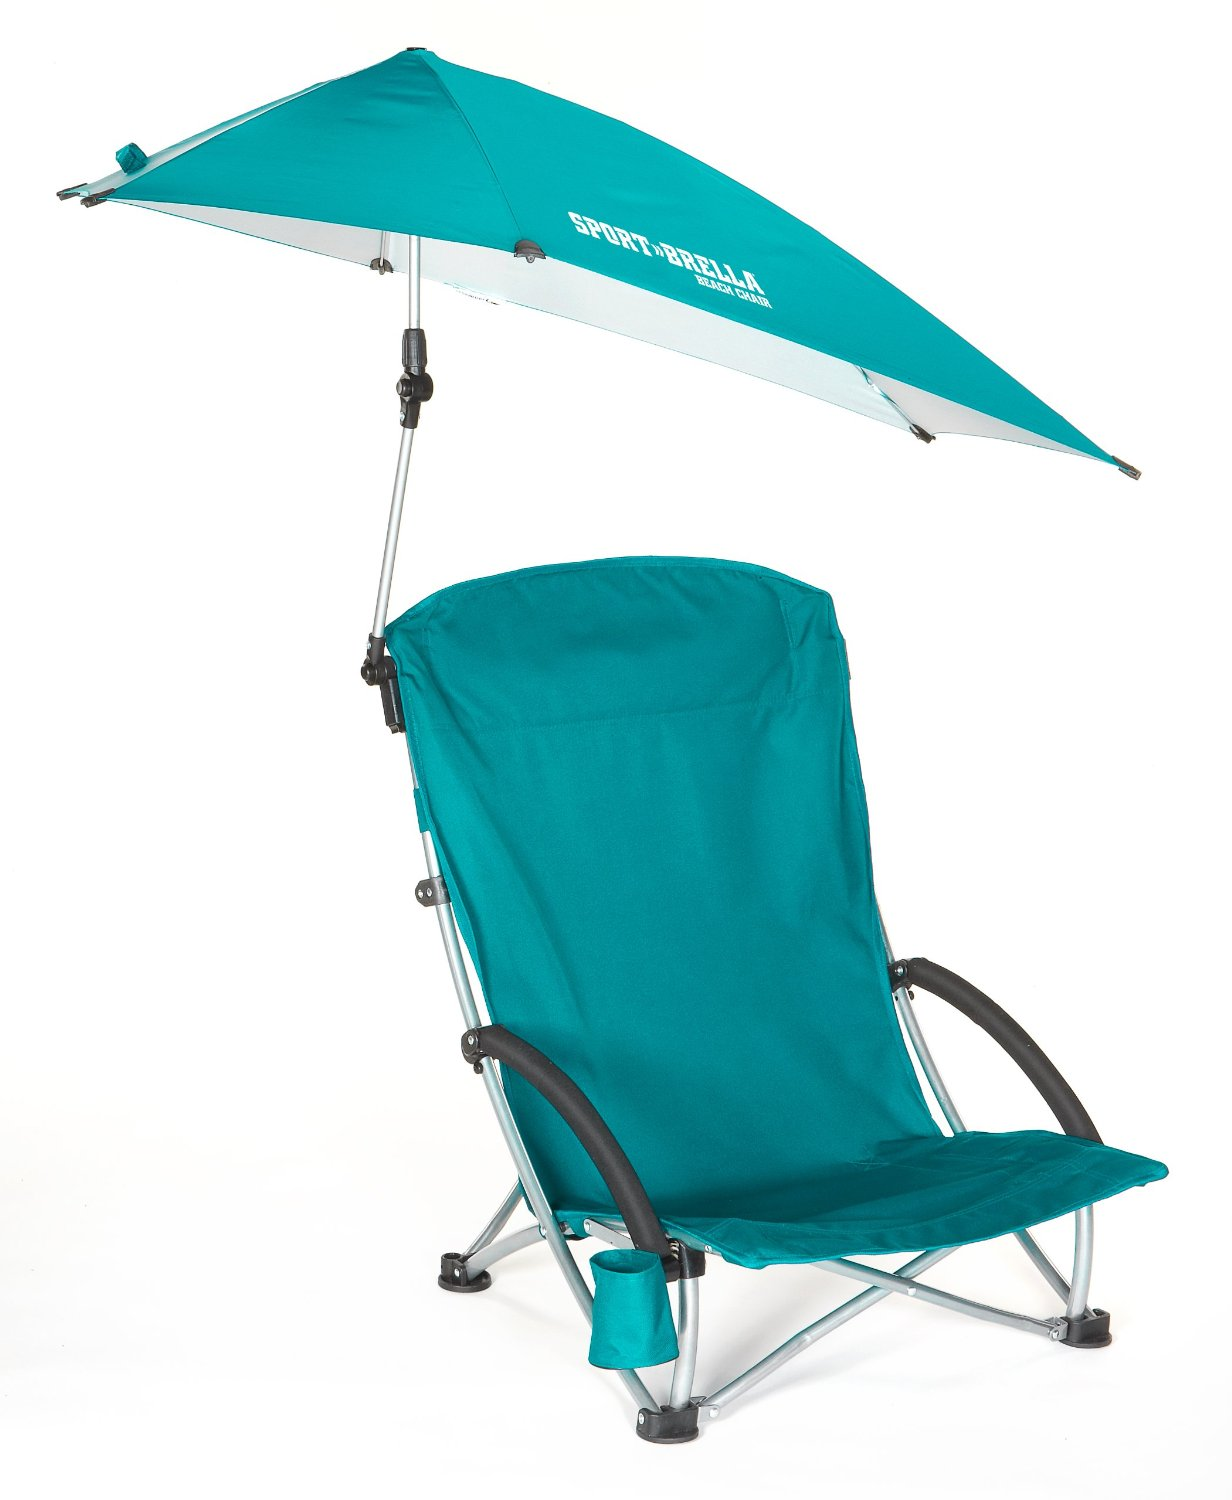 Portable Beach Chair Beach Umbrella Review May 2013